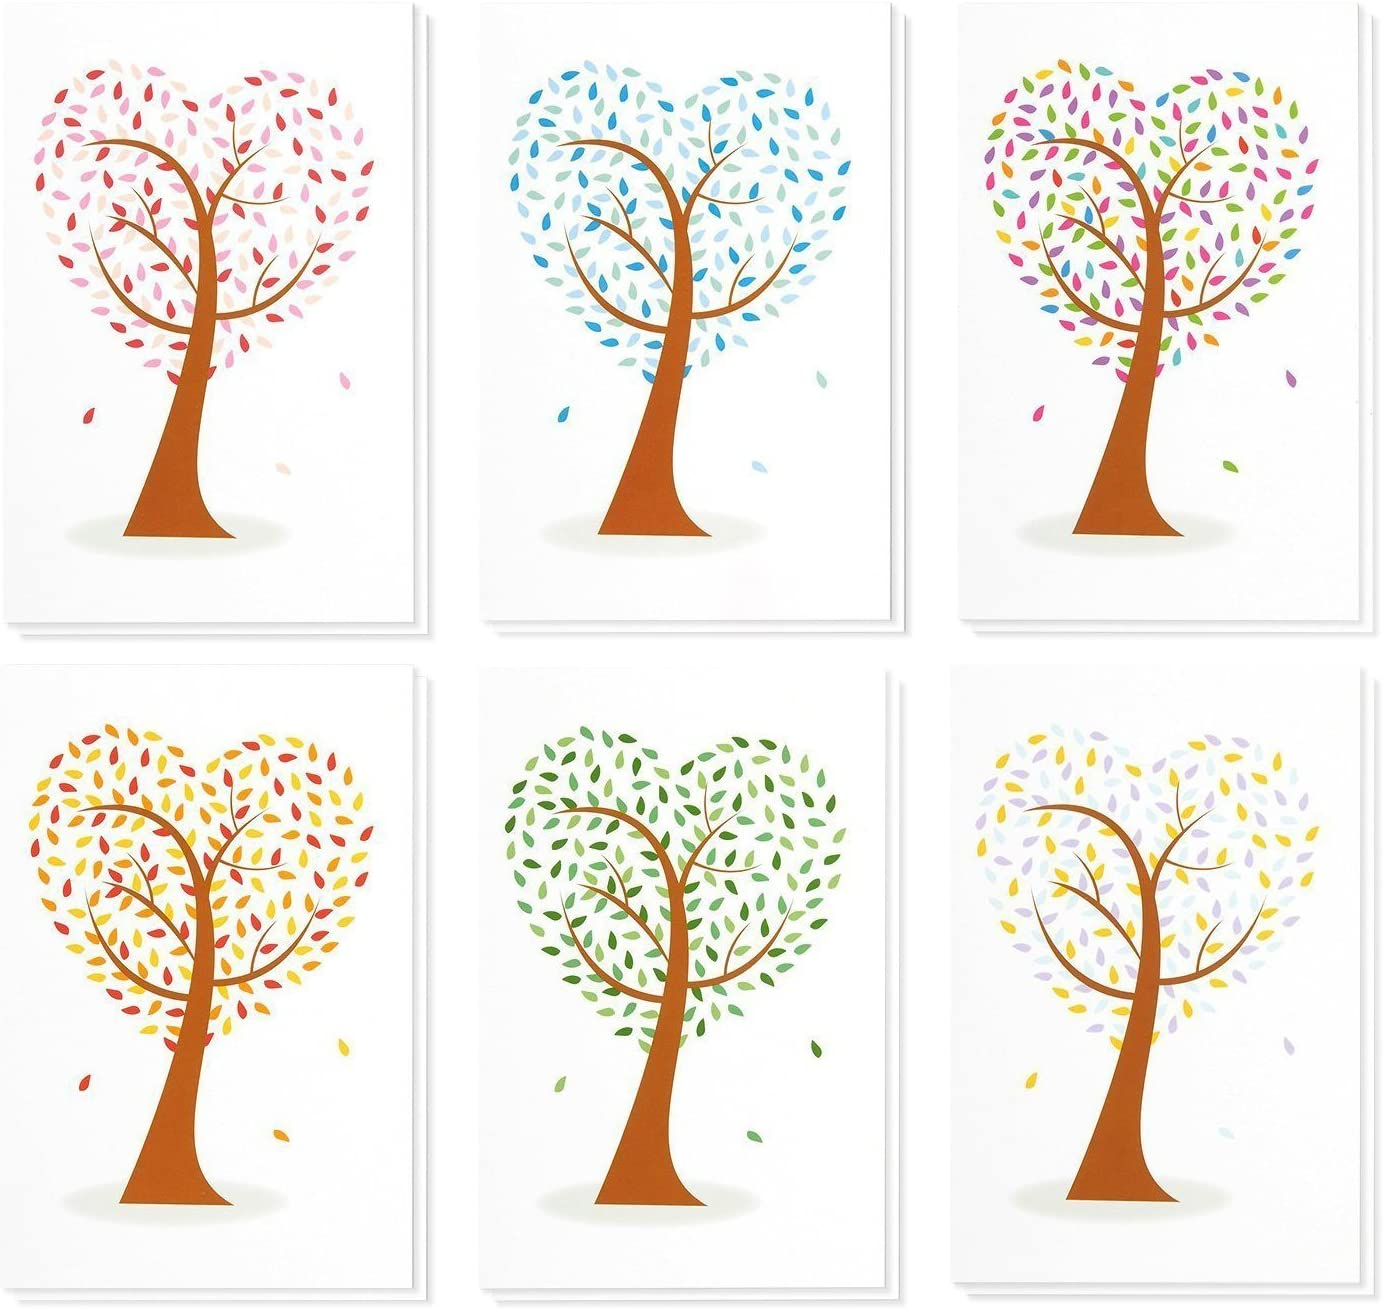 48 Pack All Occasion Blank Note Cards Greeting Cards with Envelopes - 6 Assorted Colorful Heart Shaped Tree Designs Bulk Box Set, 4 x 6 Inches